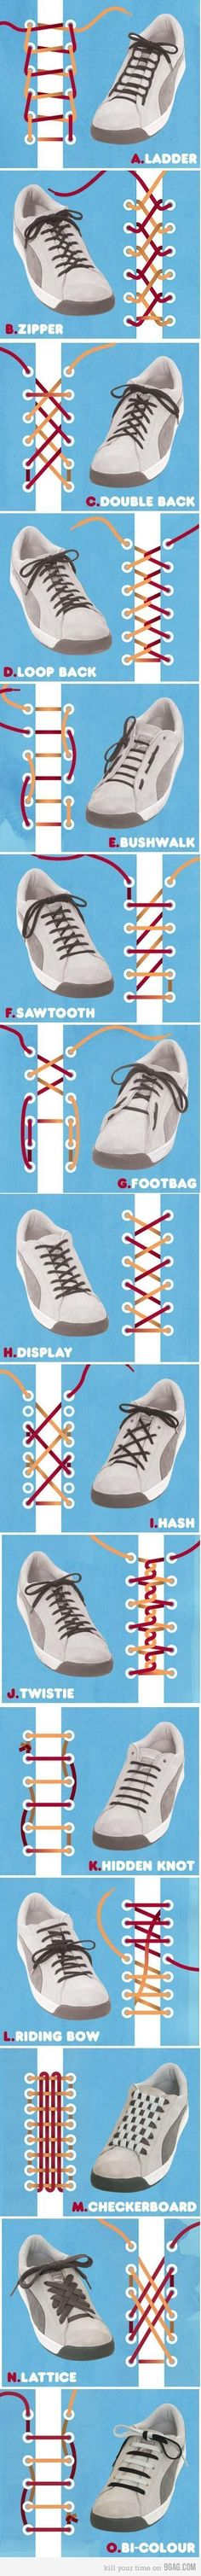 DIY Life Hacks & Crafts : Who knew there were so many different ways to tie your shoes?: